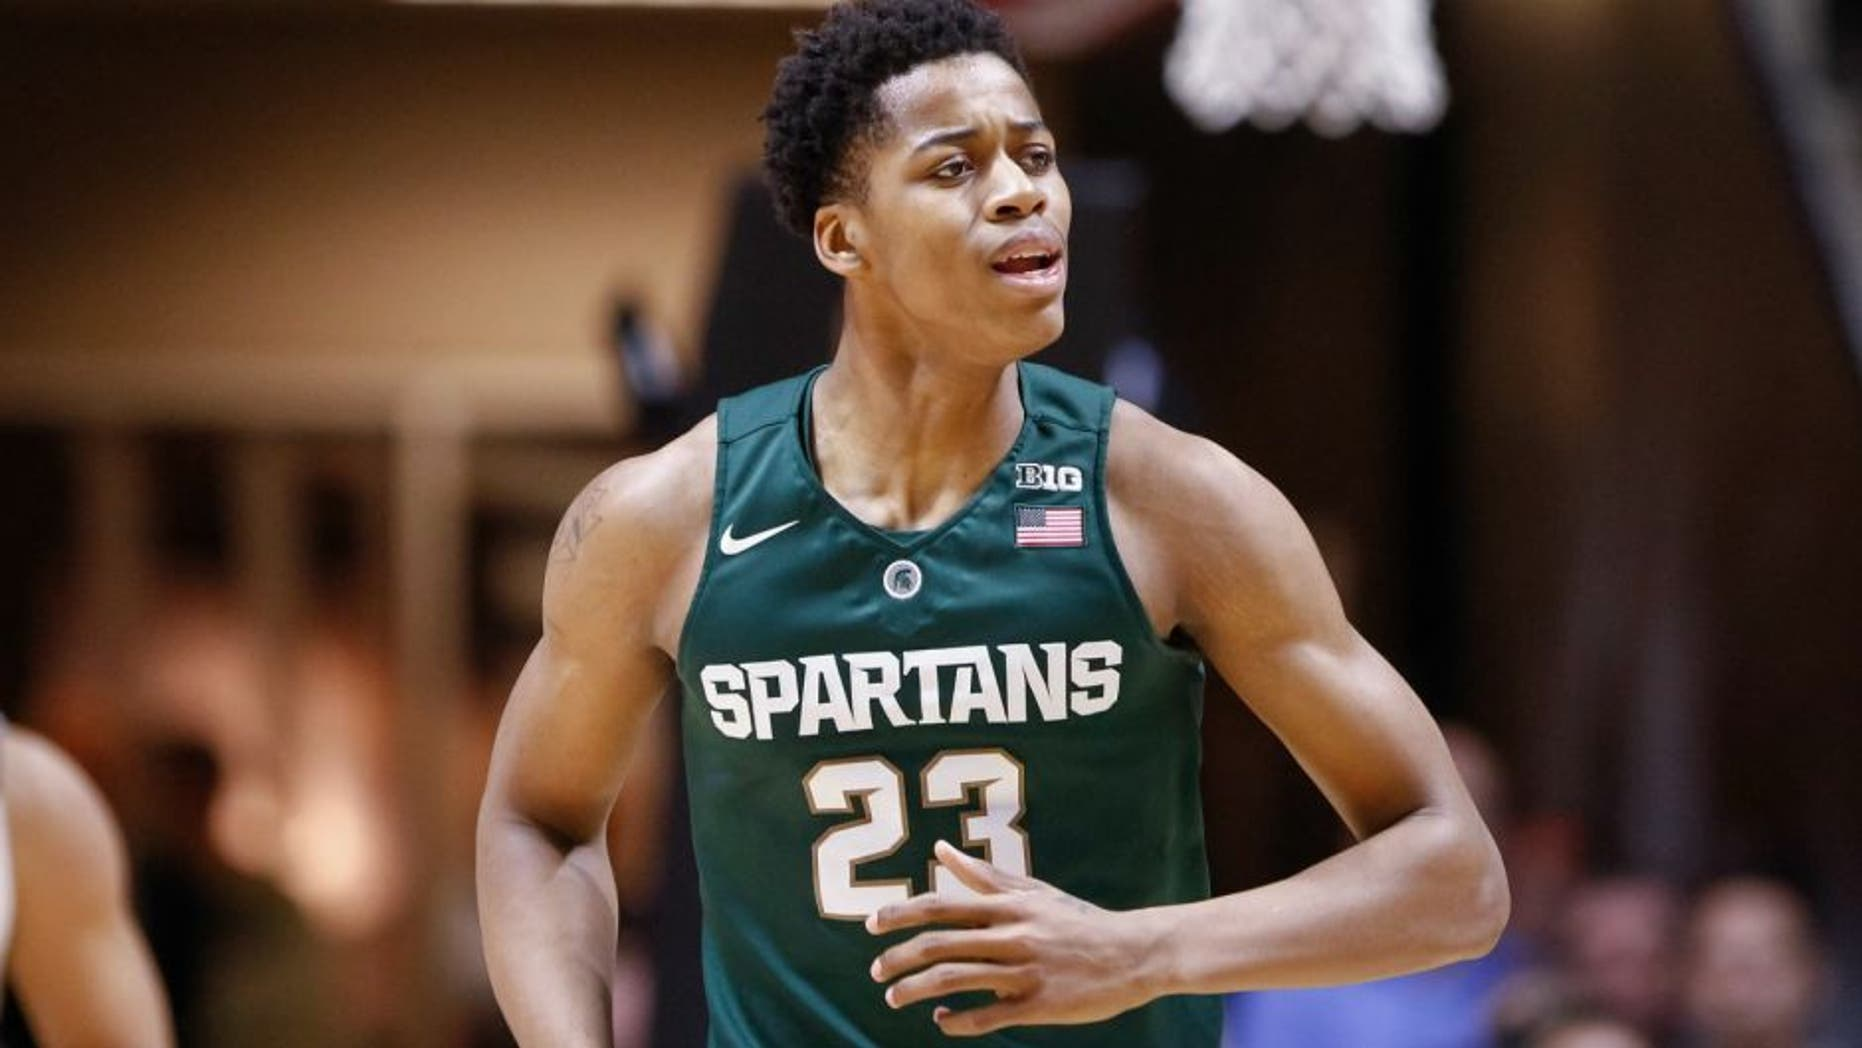 WEST LAFAYETTE, IN - FEBRUARY 09: Deyonta Davis #23 of the Michigan State Spartans jogs up the court during the game against the Purdue Boilermakers at Mackey Arena on February 9, 2016 in West Lafayette, Indiana. (Photo by Michael Hickey/Getty Images)